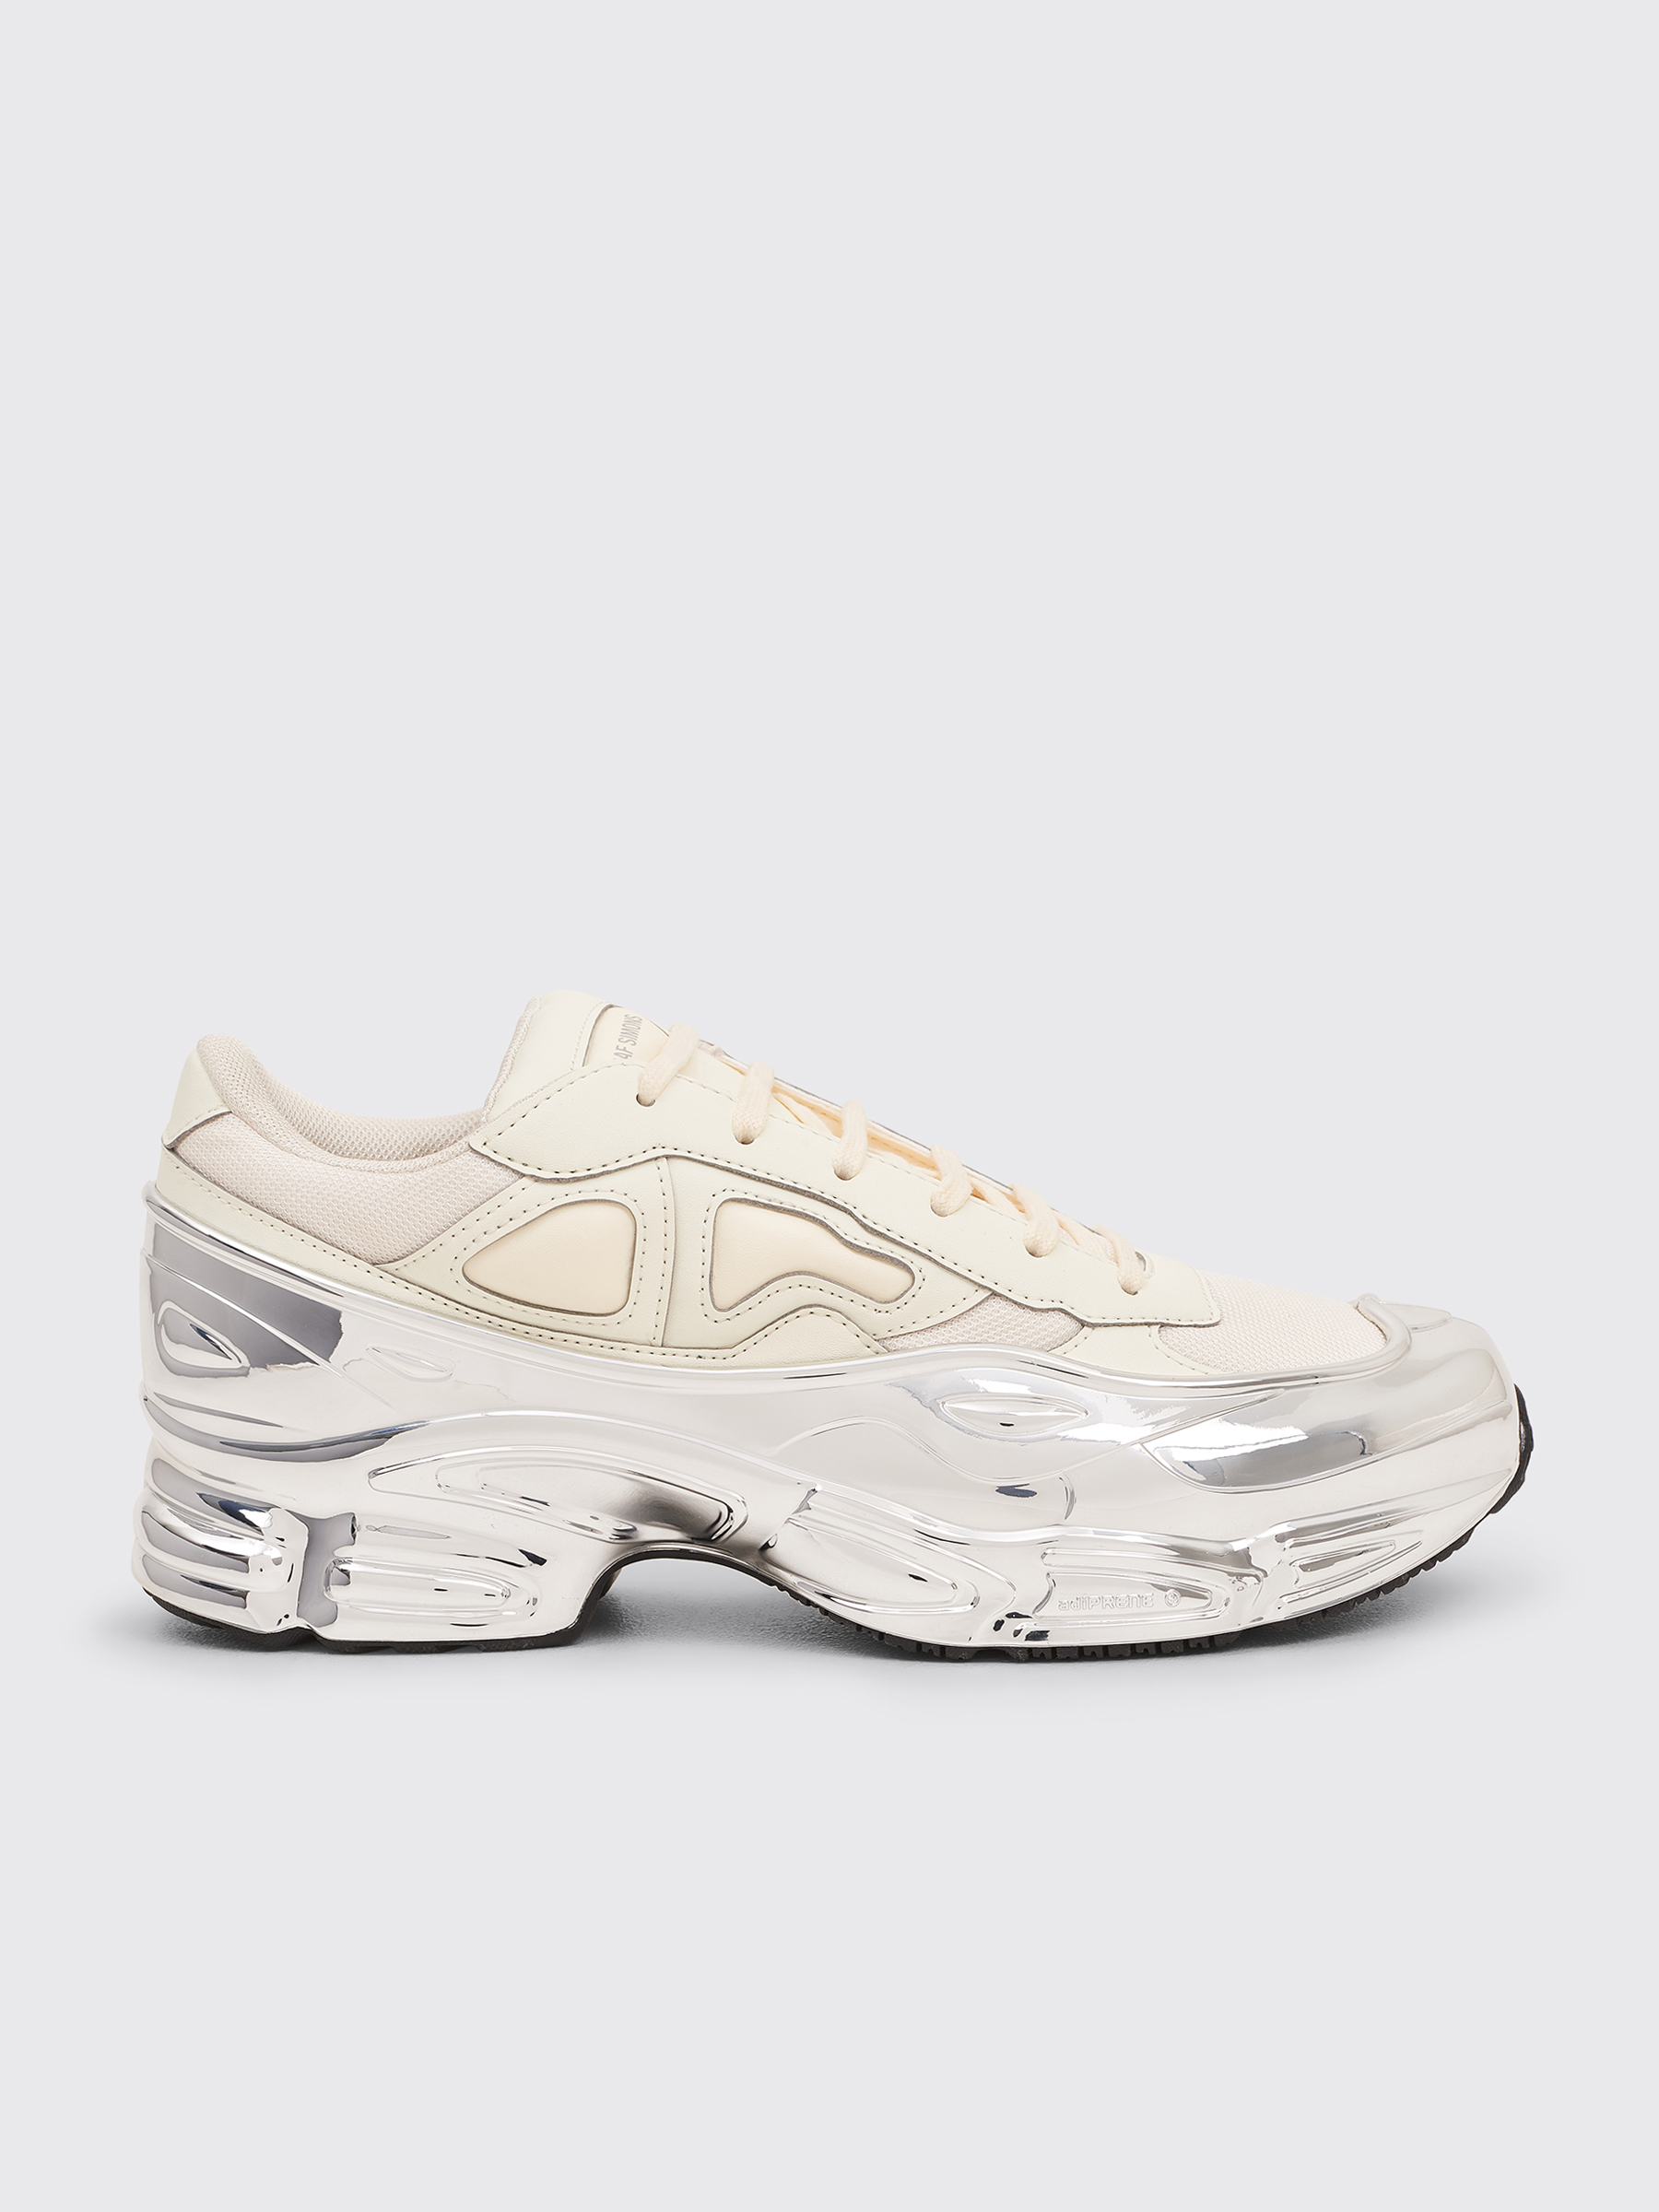 Raf Simons X Adidas : Adidas Online | Great Prices & Fast ...